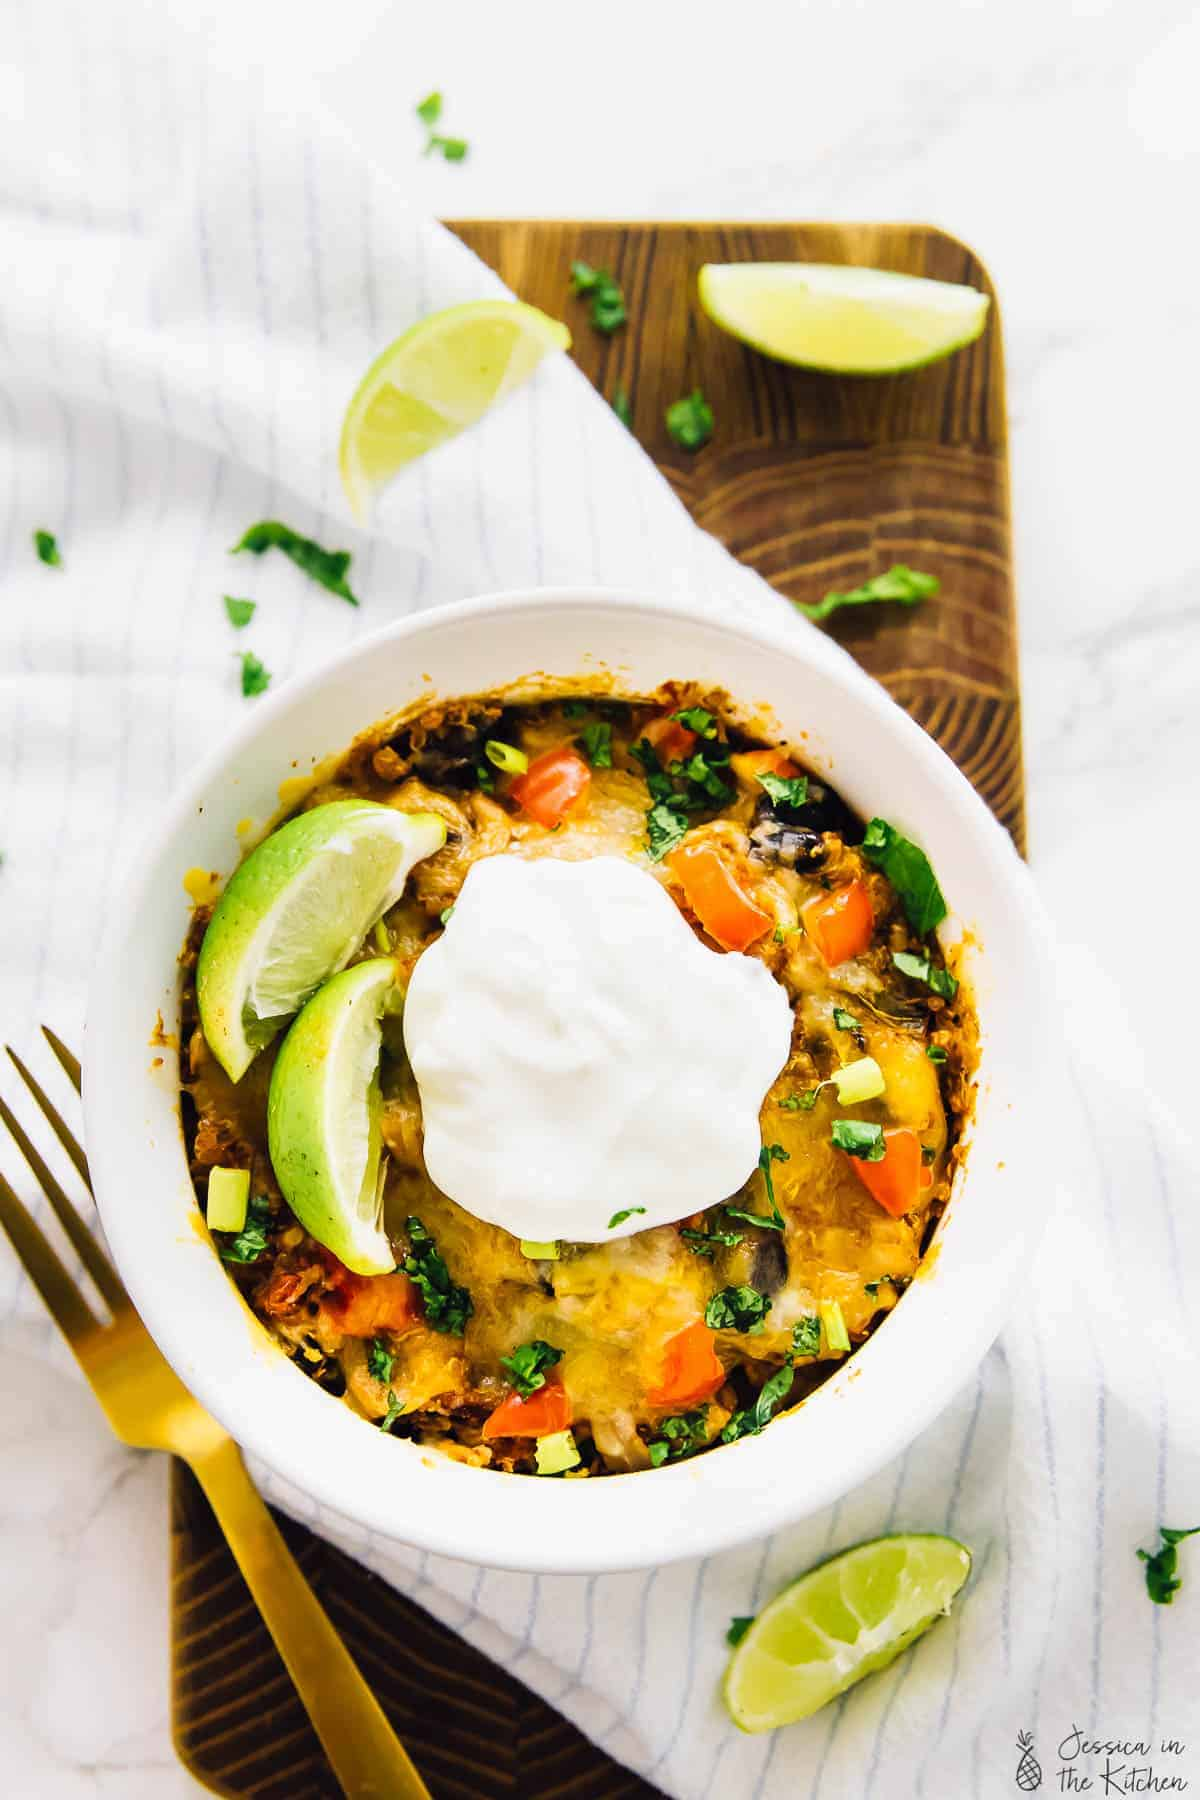 This healthy Slow Cooker Quinoa Enchilada Casserole takes only 15 minutes of prep, then add it all into the slow cooker! It's filling, serves lots of leftover and is bursting with flavour! via https://jessicainthekitchen.com